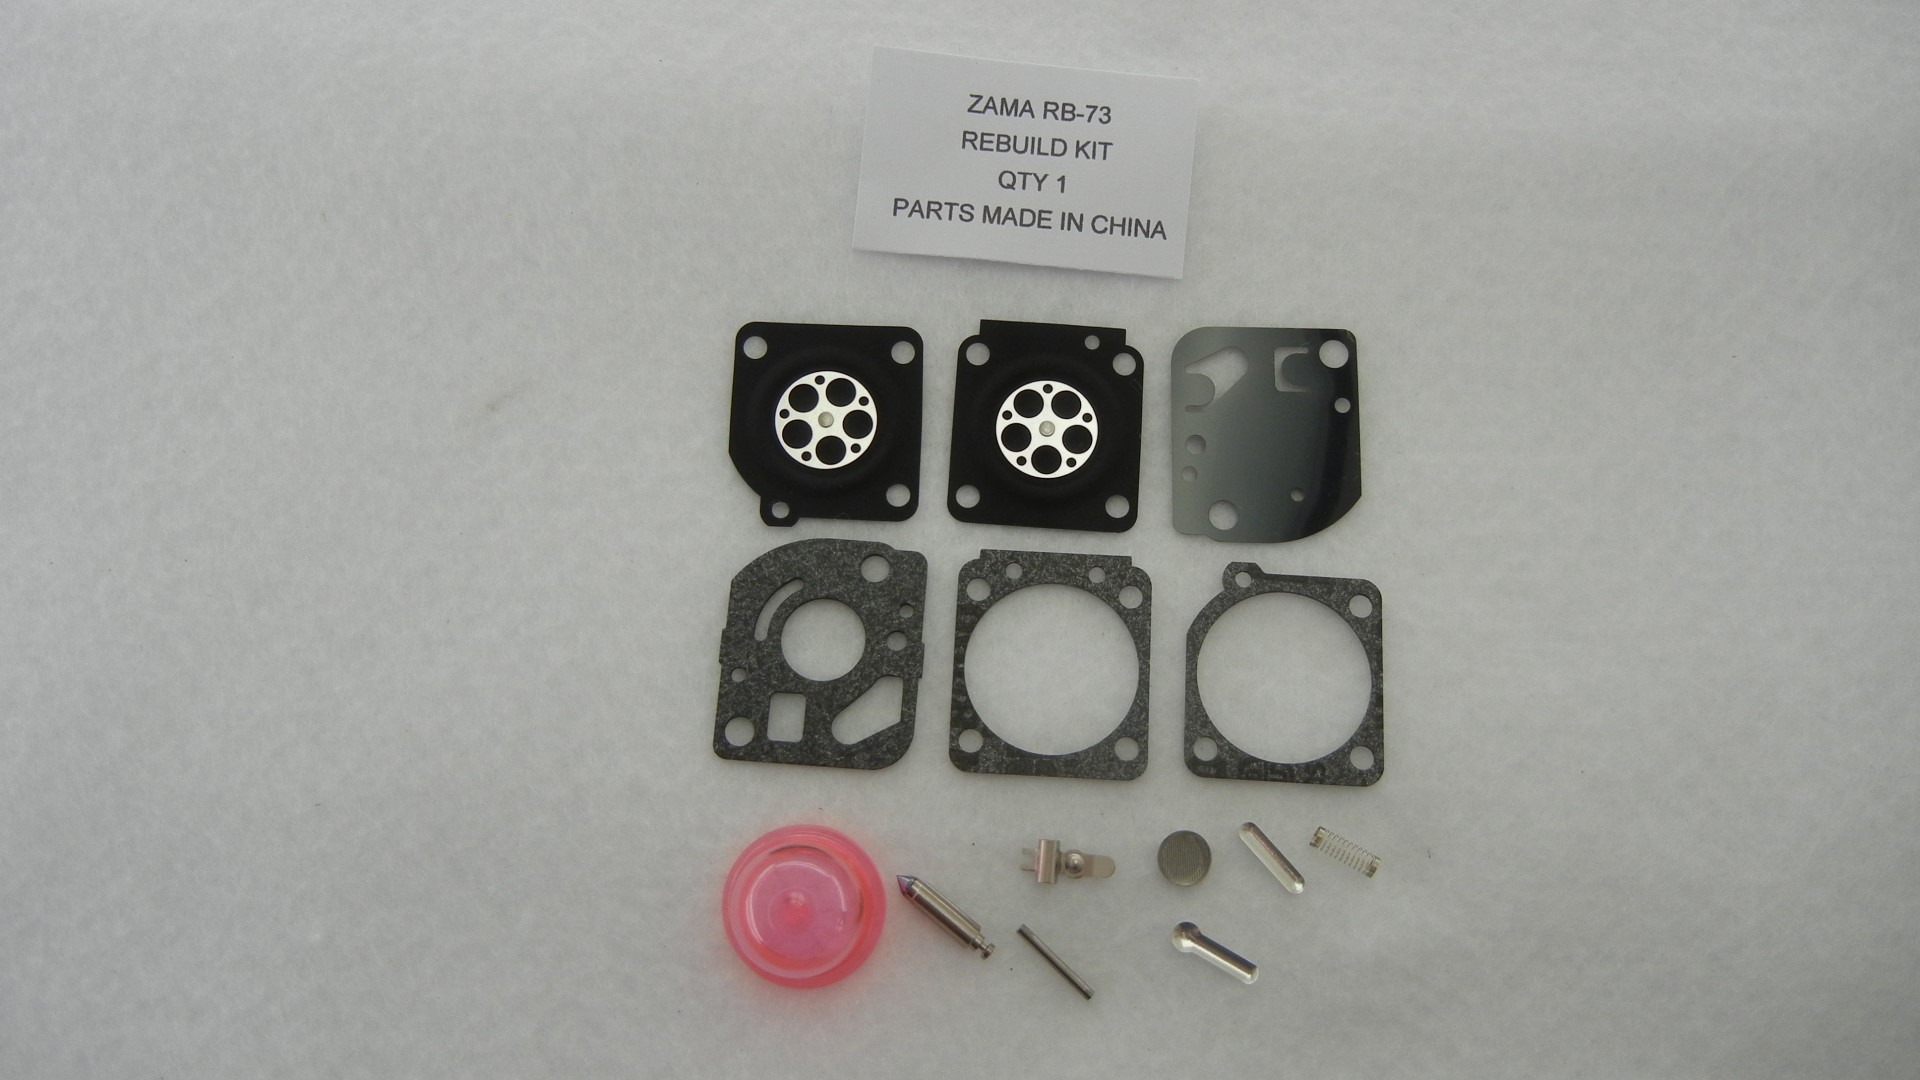 CARBURETOR KIT FOR ZAMA RB-73 REPLACES OEM RB-73 C1U-W4 C1U-W47A